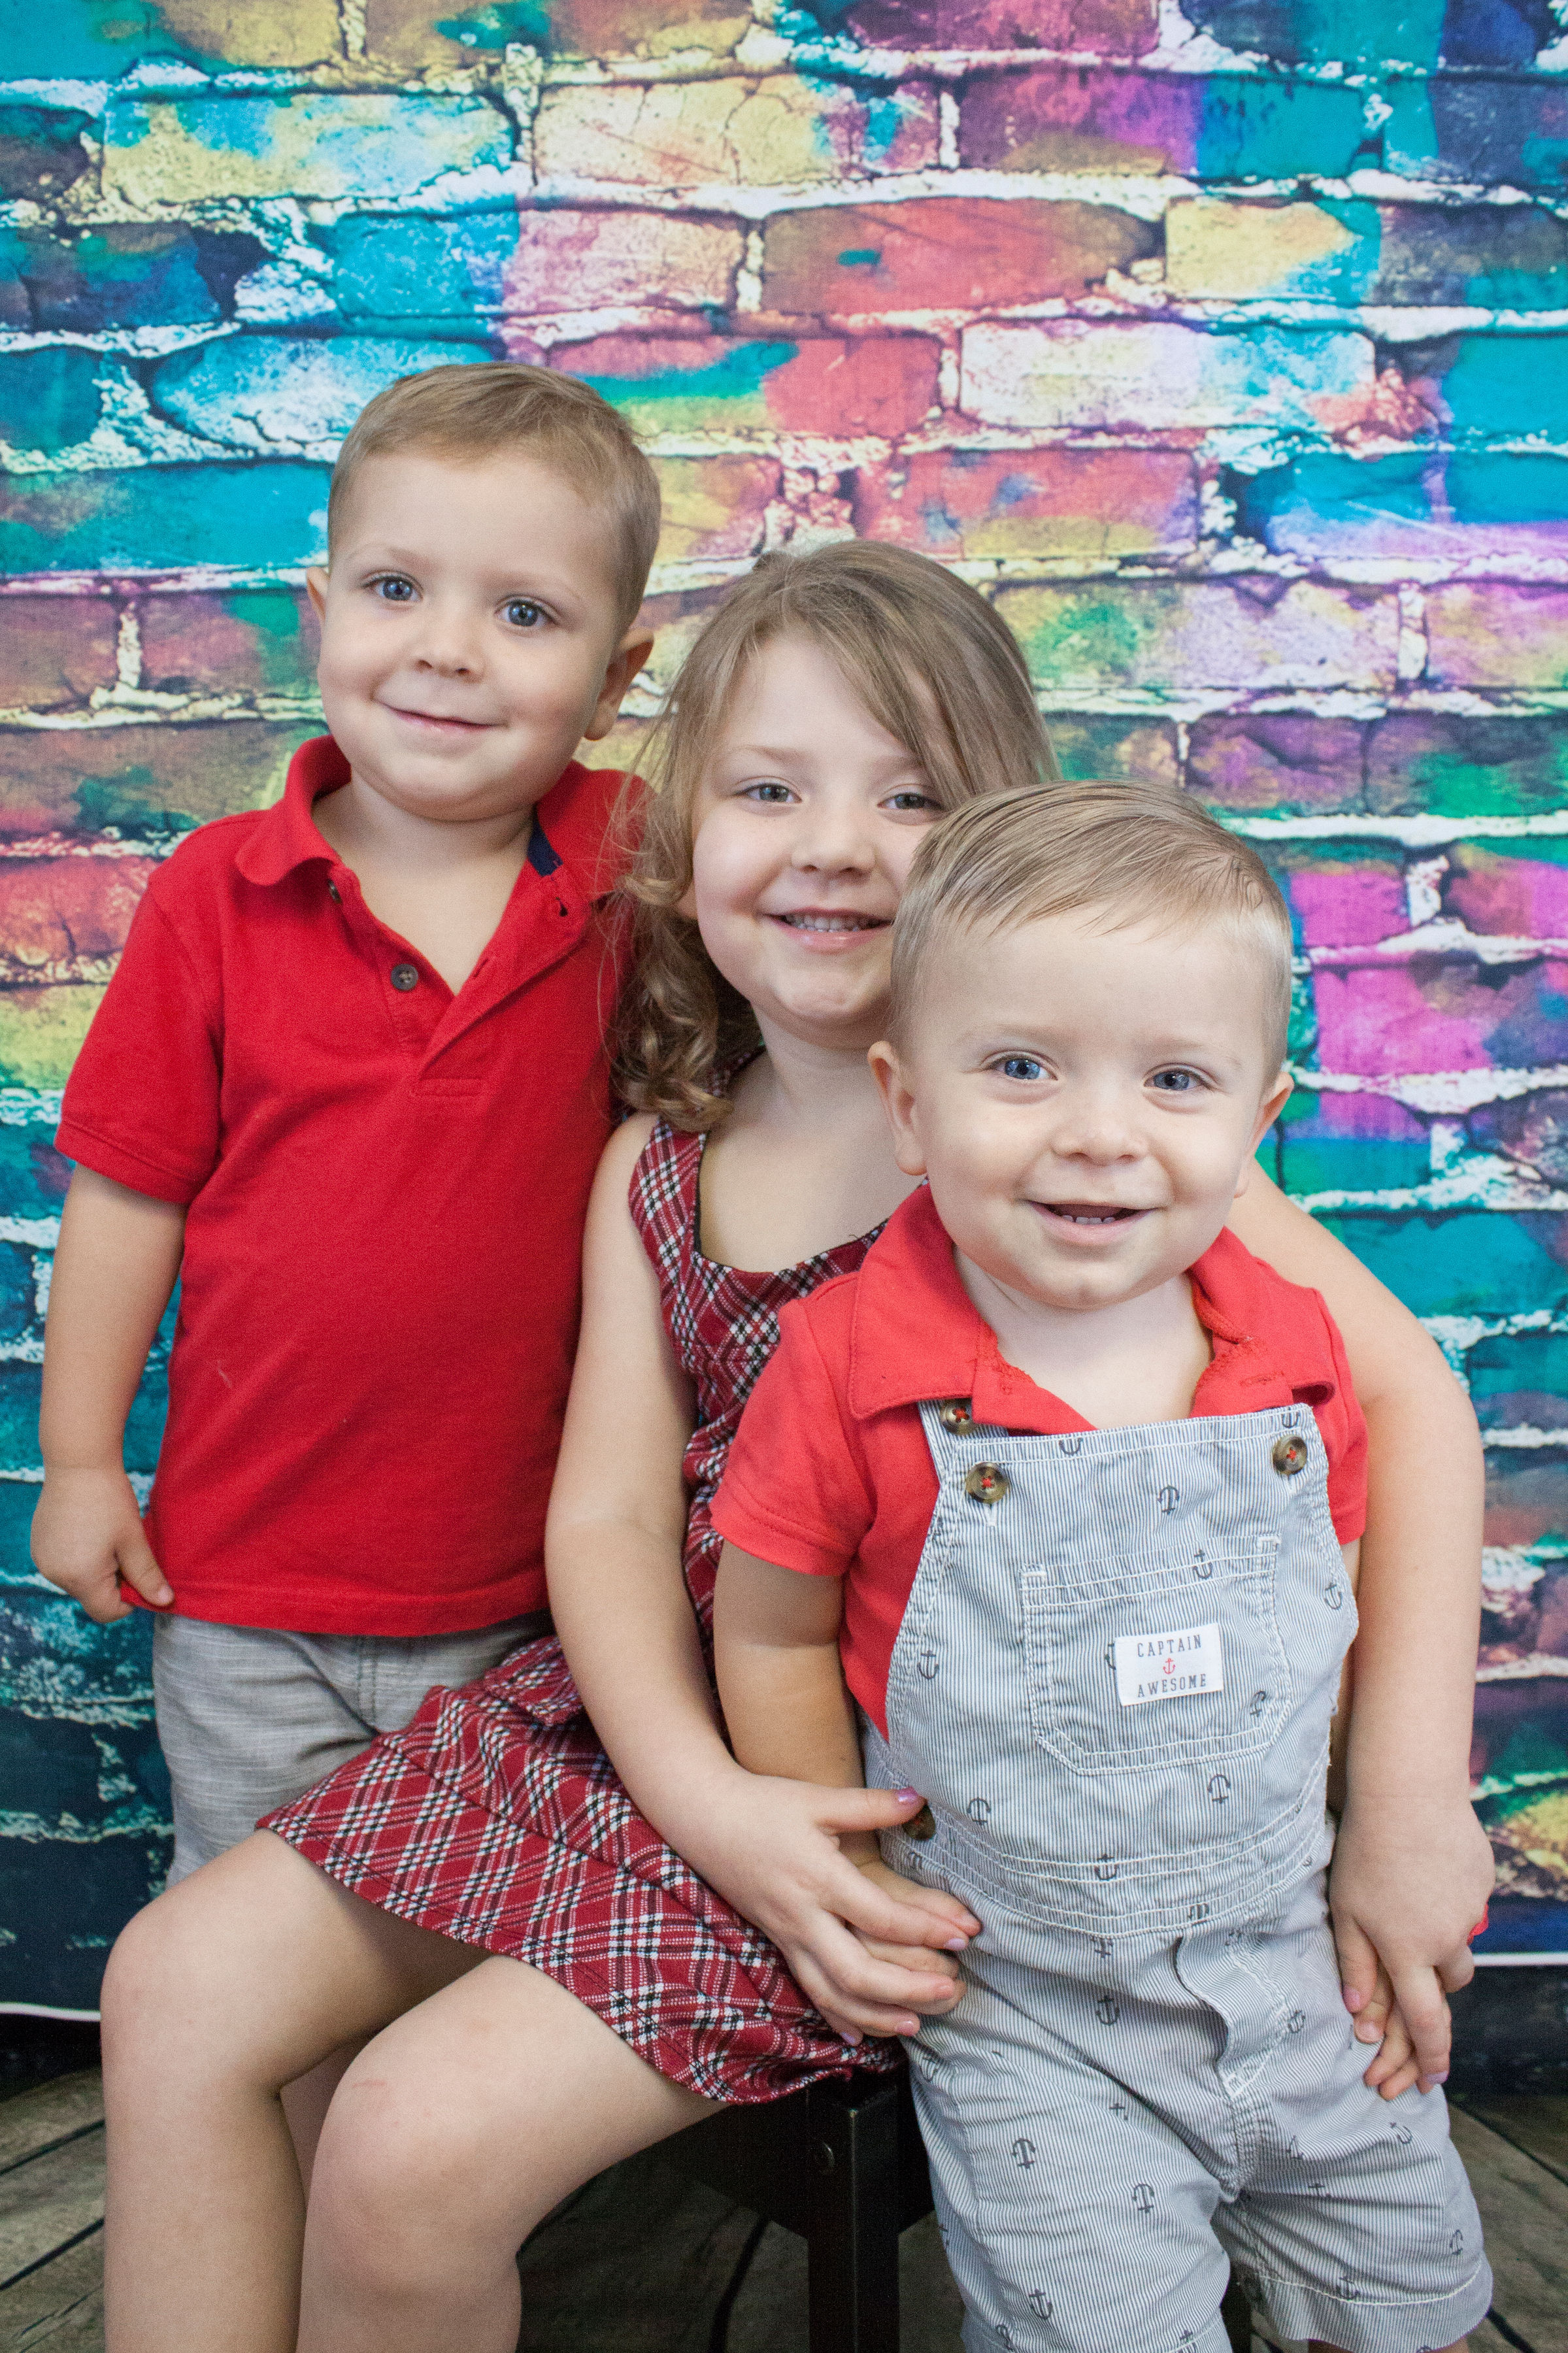 Sibling Packages are available:   *2 Individual Prints Packages + Siblings Prints Package - $60.00  *2 Individual Prints Packages + Siblings Digital Download - $30.00  *Siblings Only Prints Package - $25.00  *Siblings Only Digital Download - $15.00